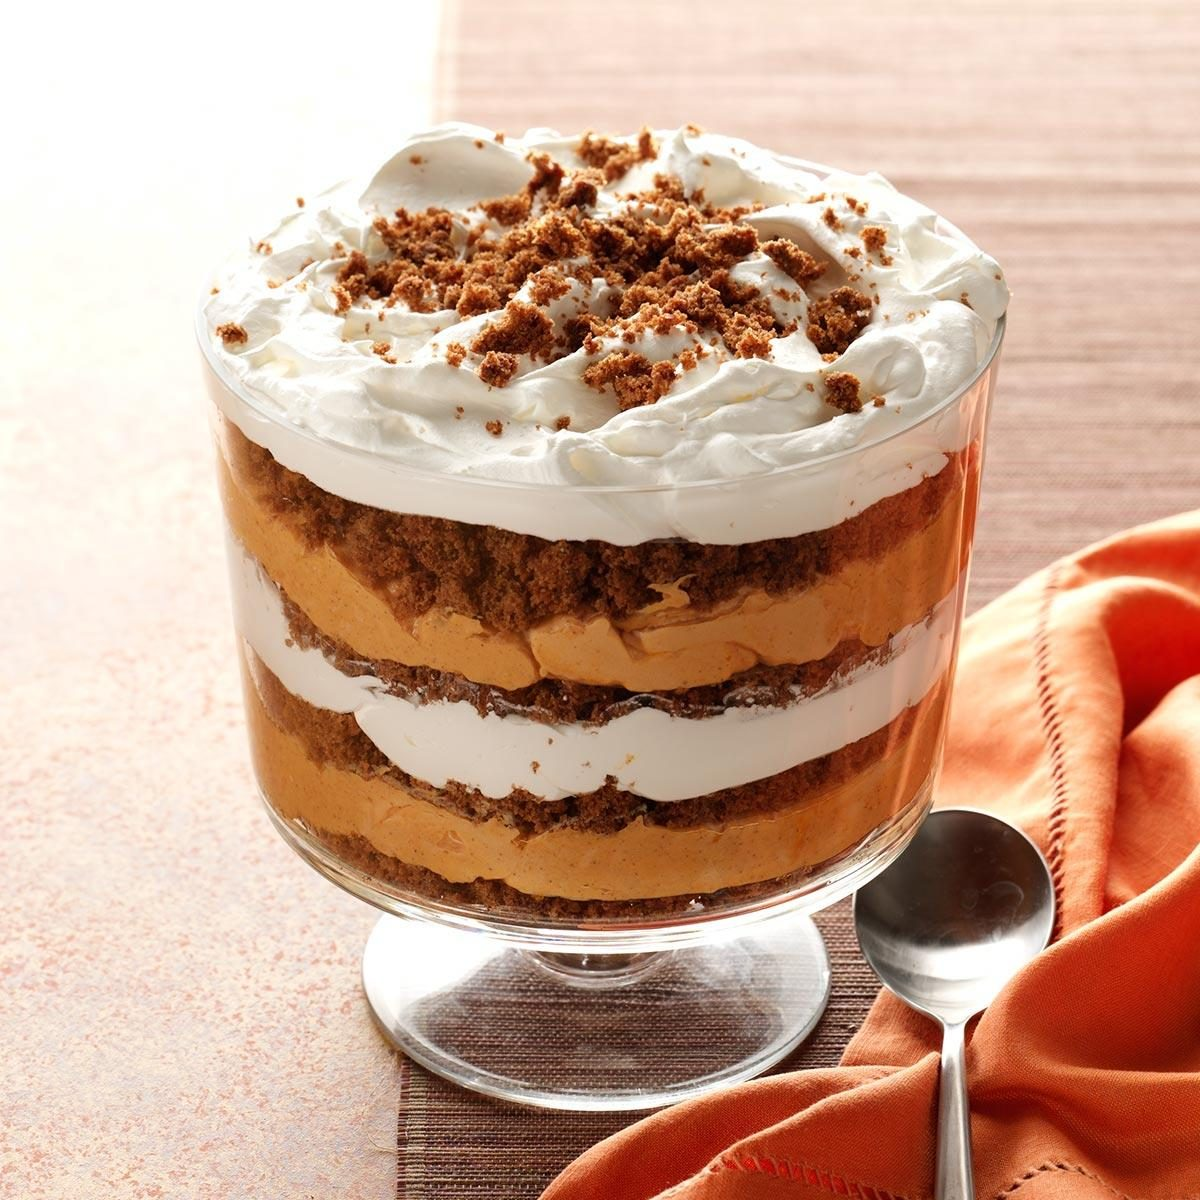 What Kinds Of Fruit Is In Carrot Cake